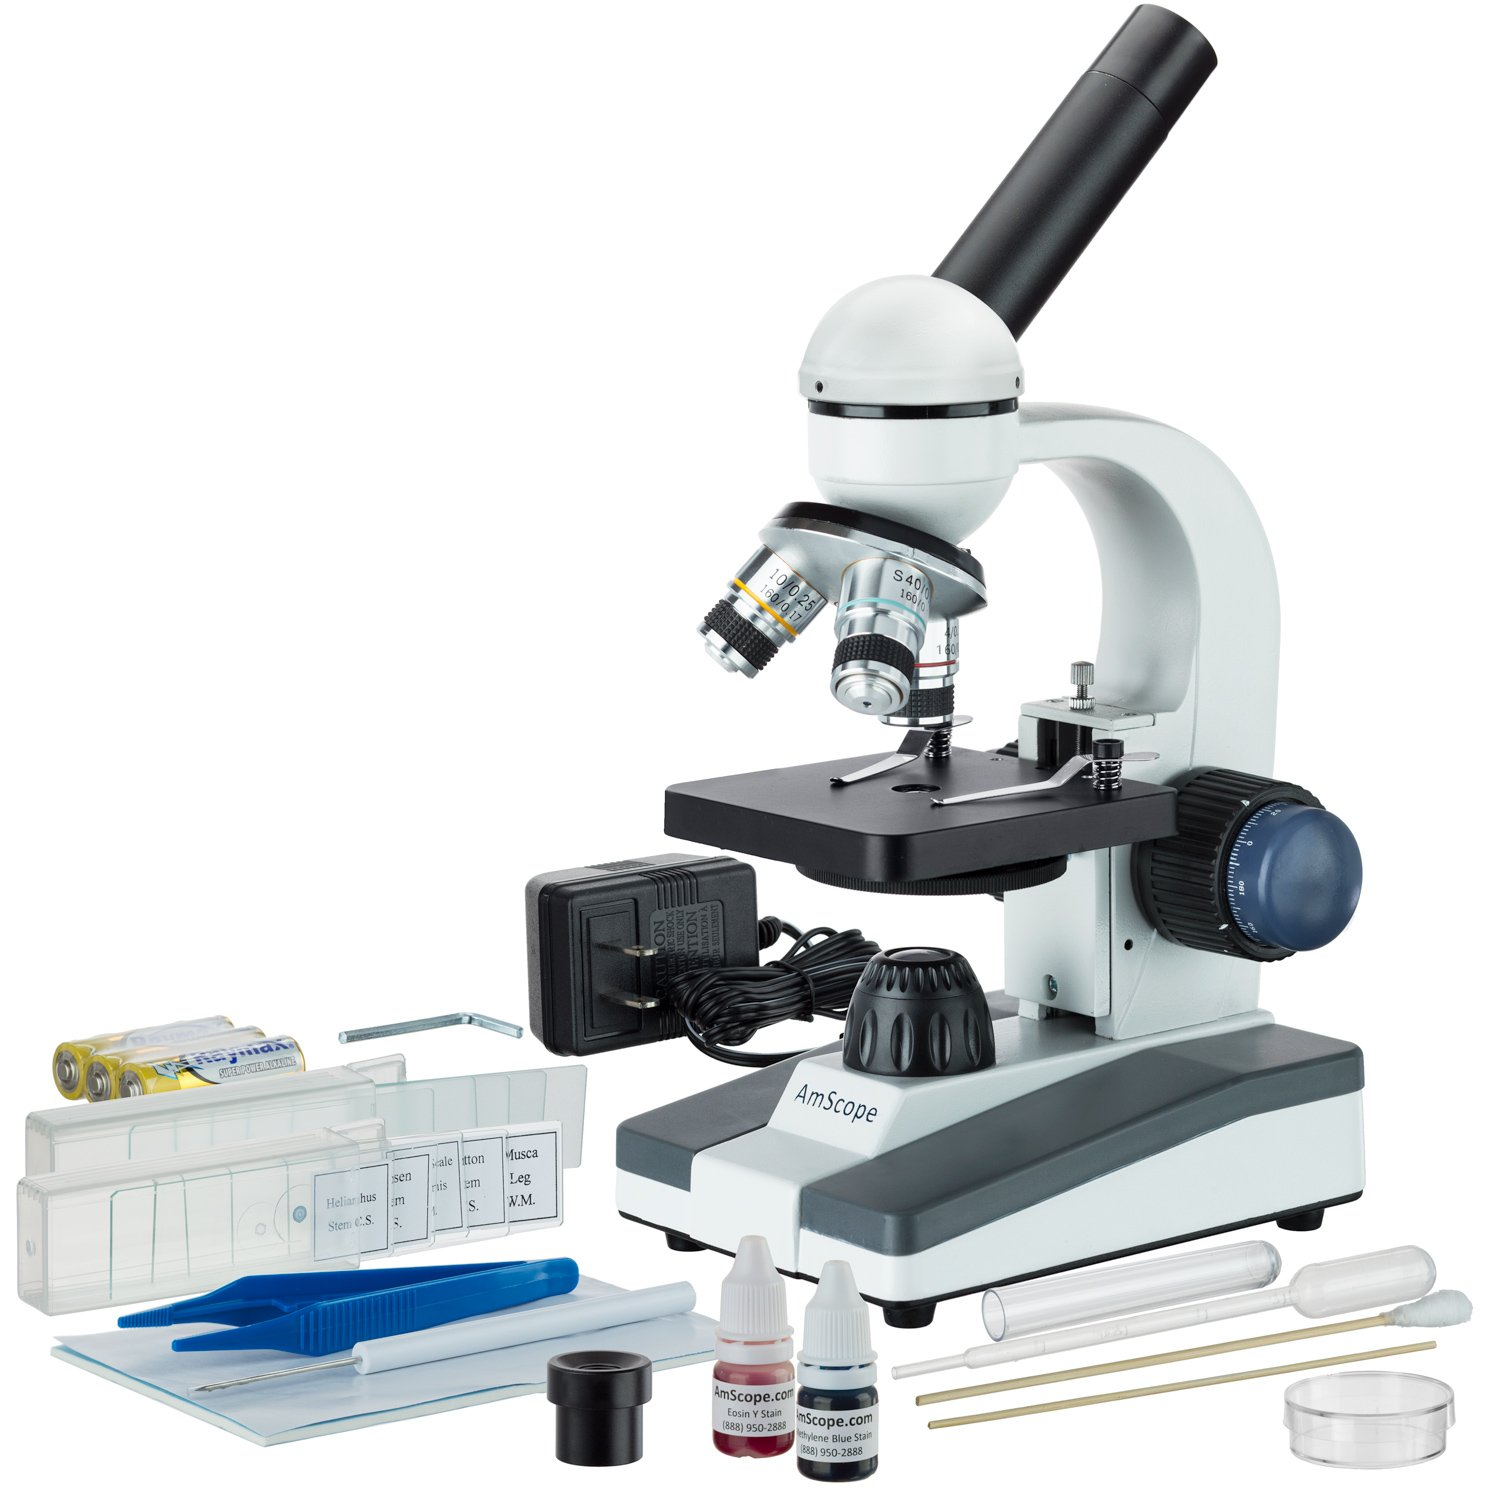 AmScope M150C-SP14 40X-1000X Portable Student Microscope with Slide Preparation Kit by AmScope